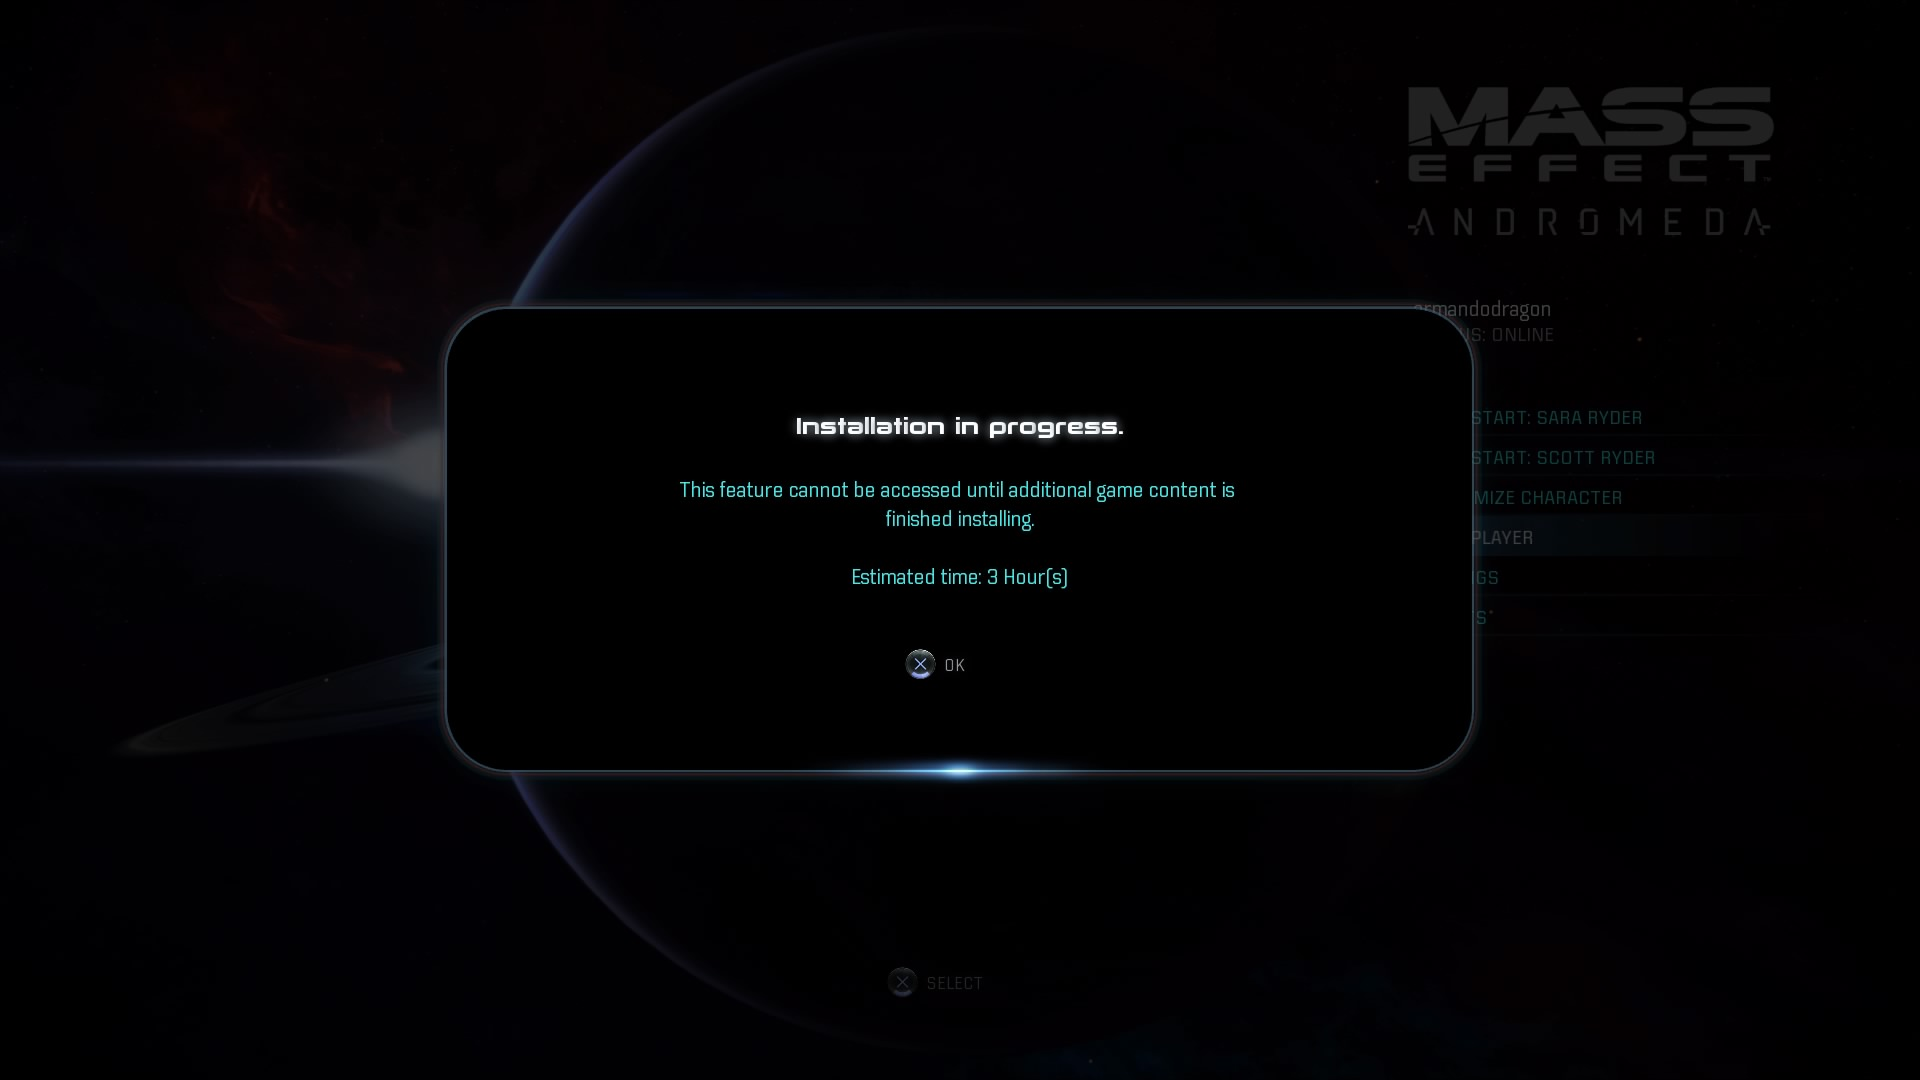 mass effect the application was unable to start correctly